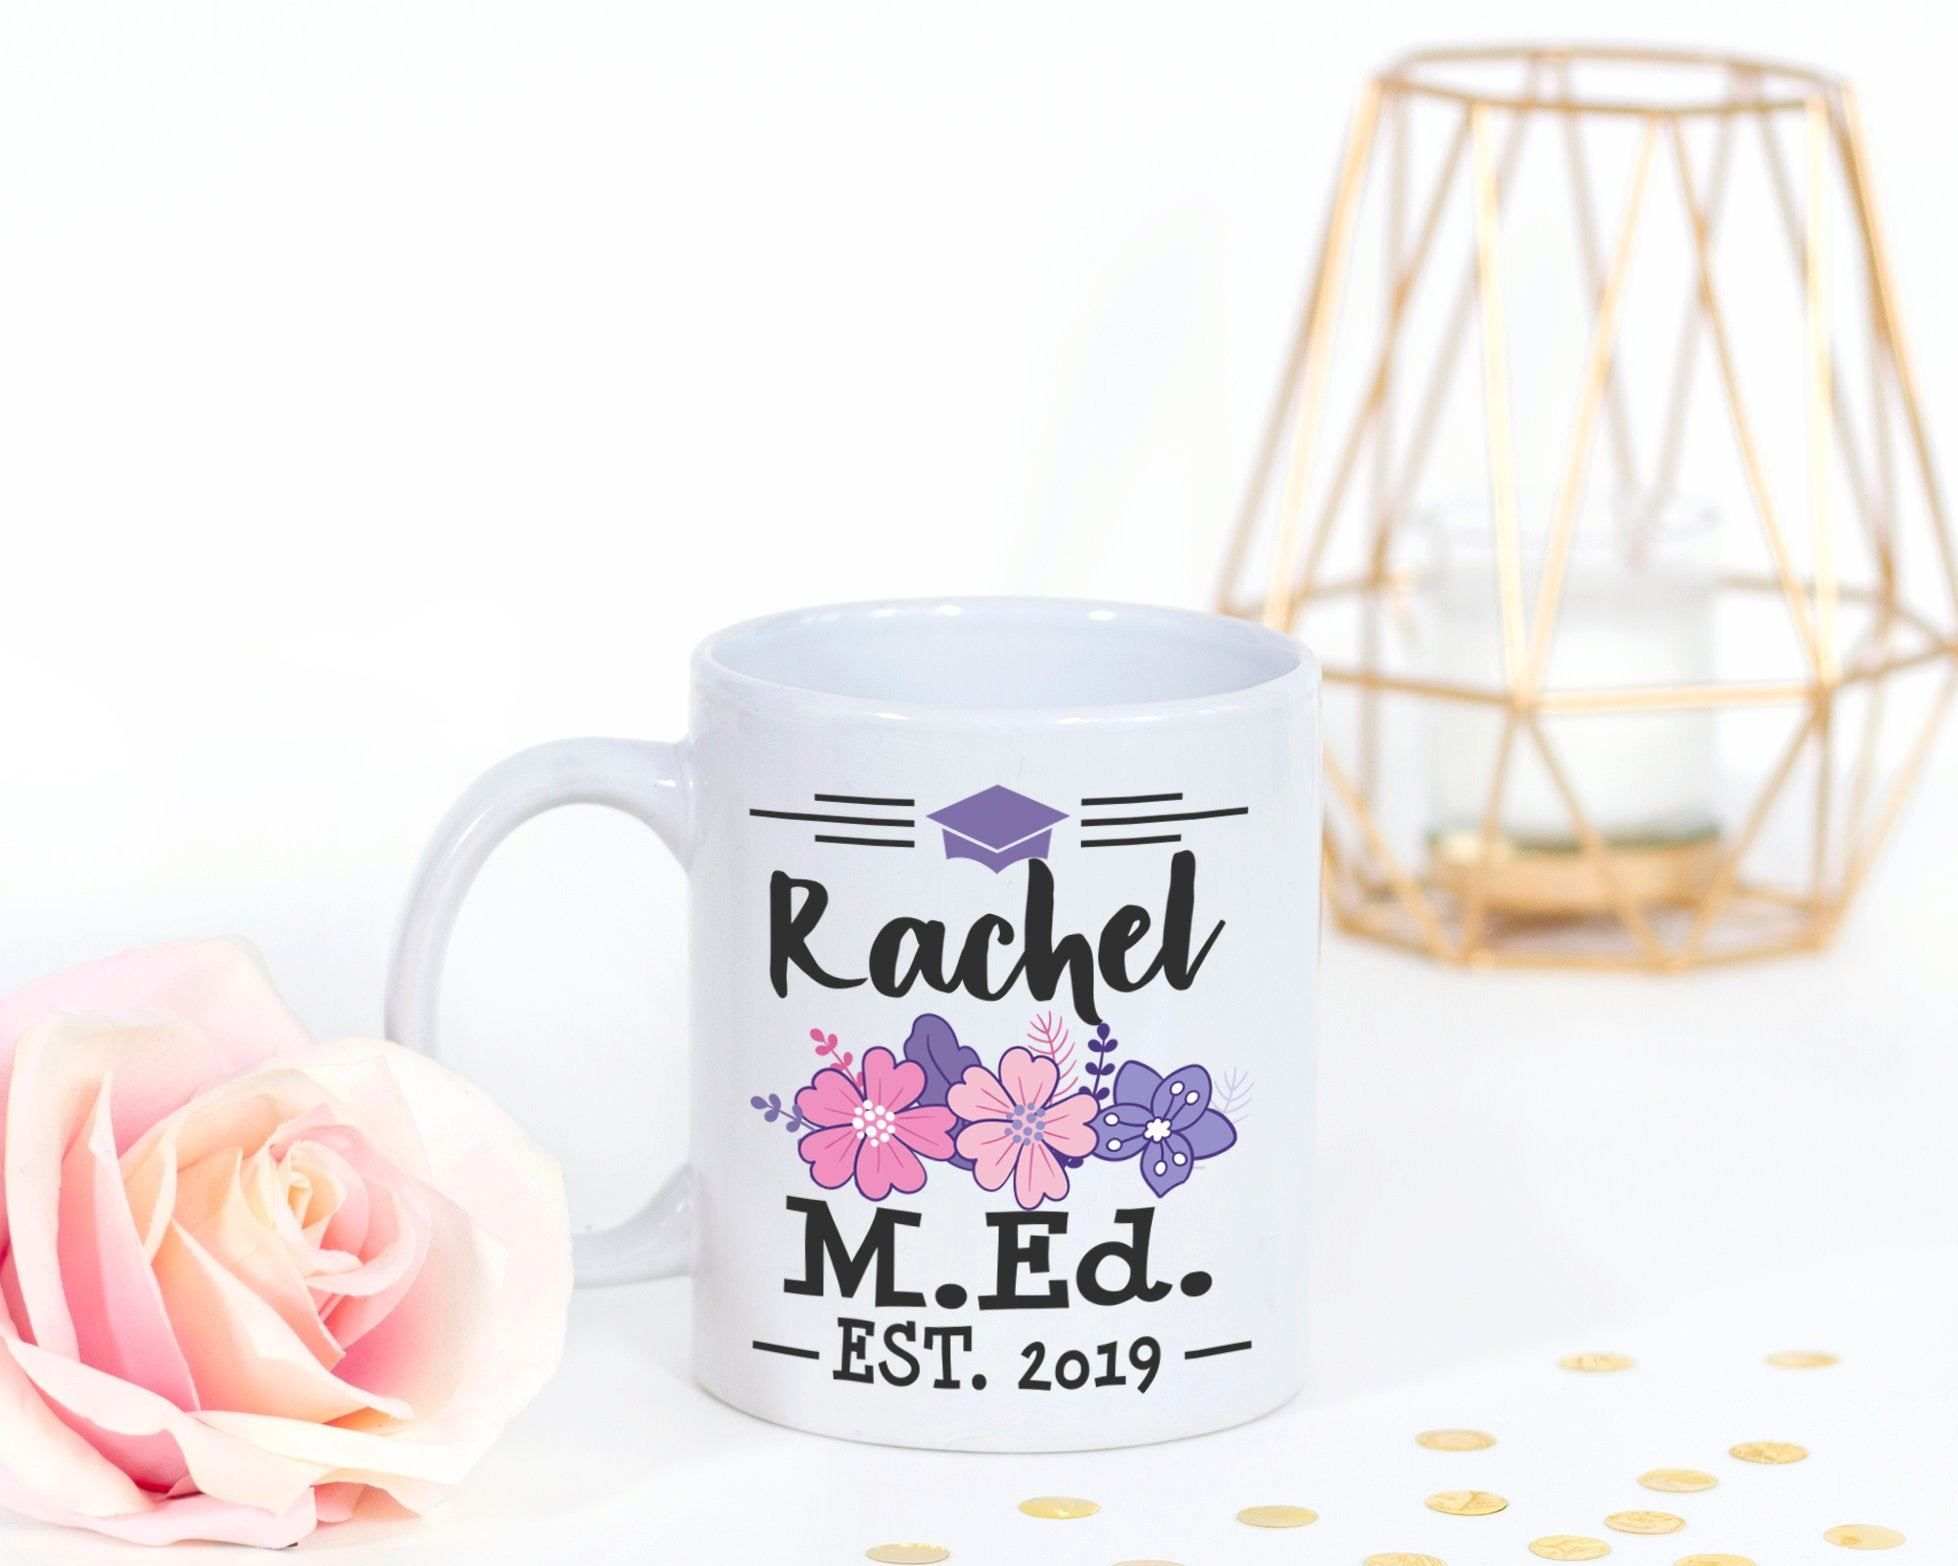 Graduation gift for masters in education med